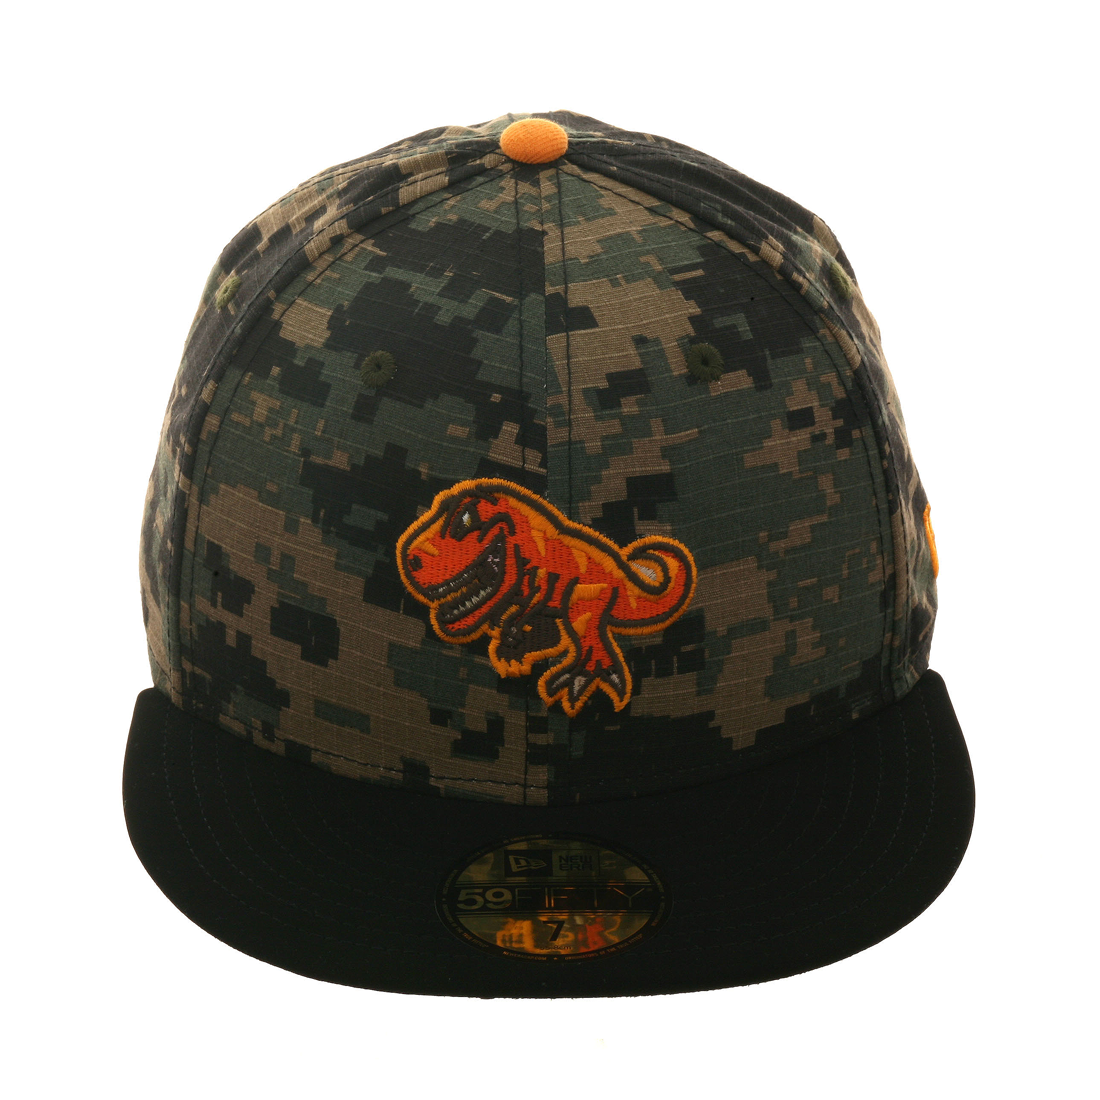 053dd29e31a New Era 59Fifty Dionic T- Rex Hat - Camouflage